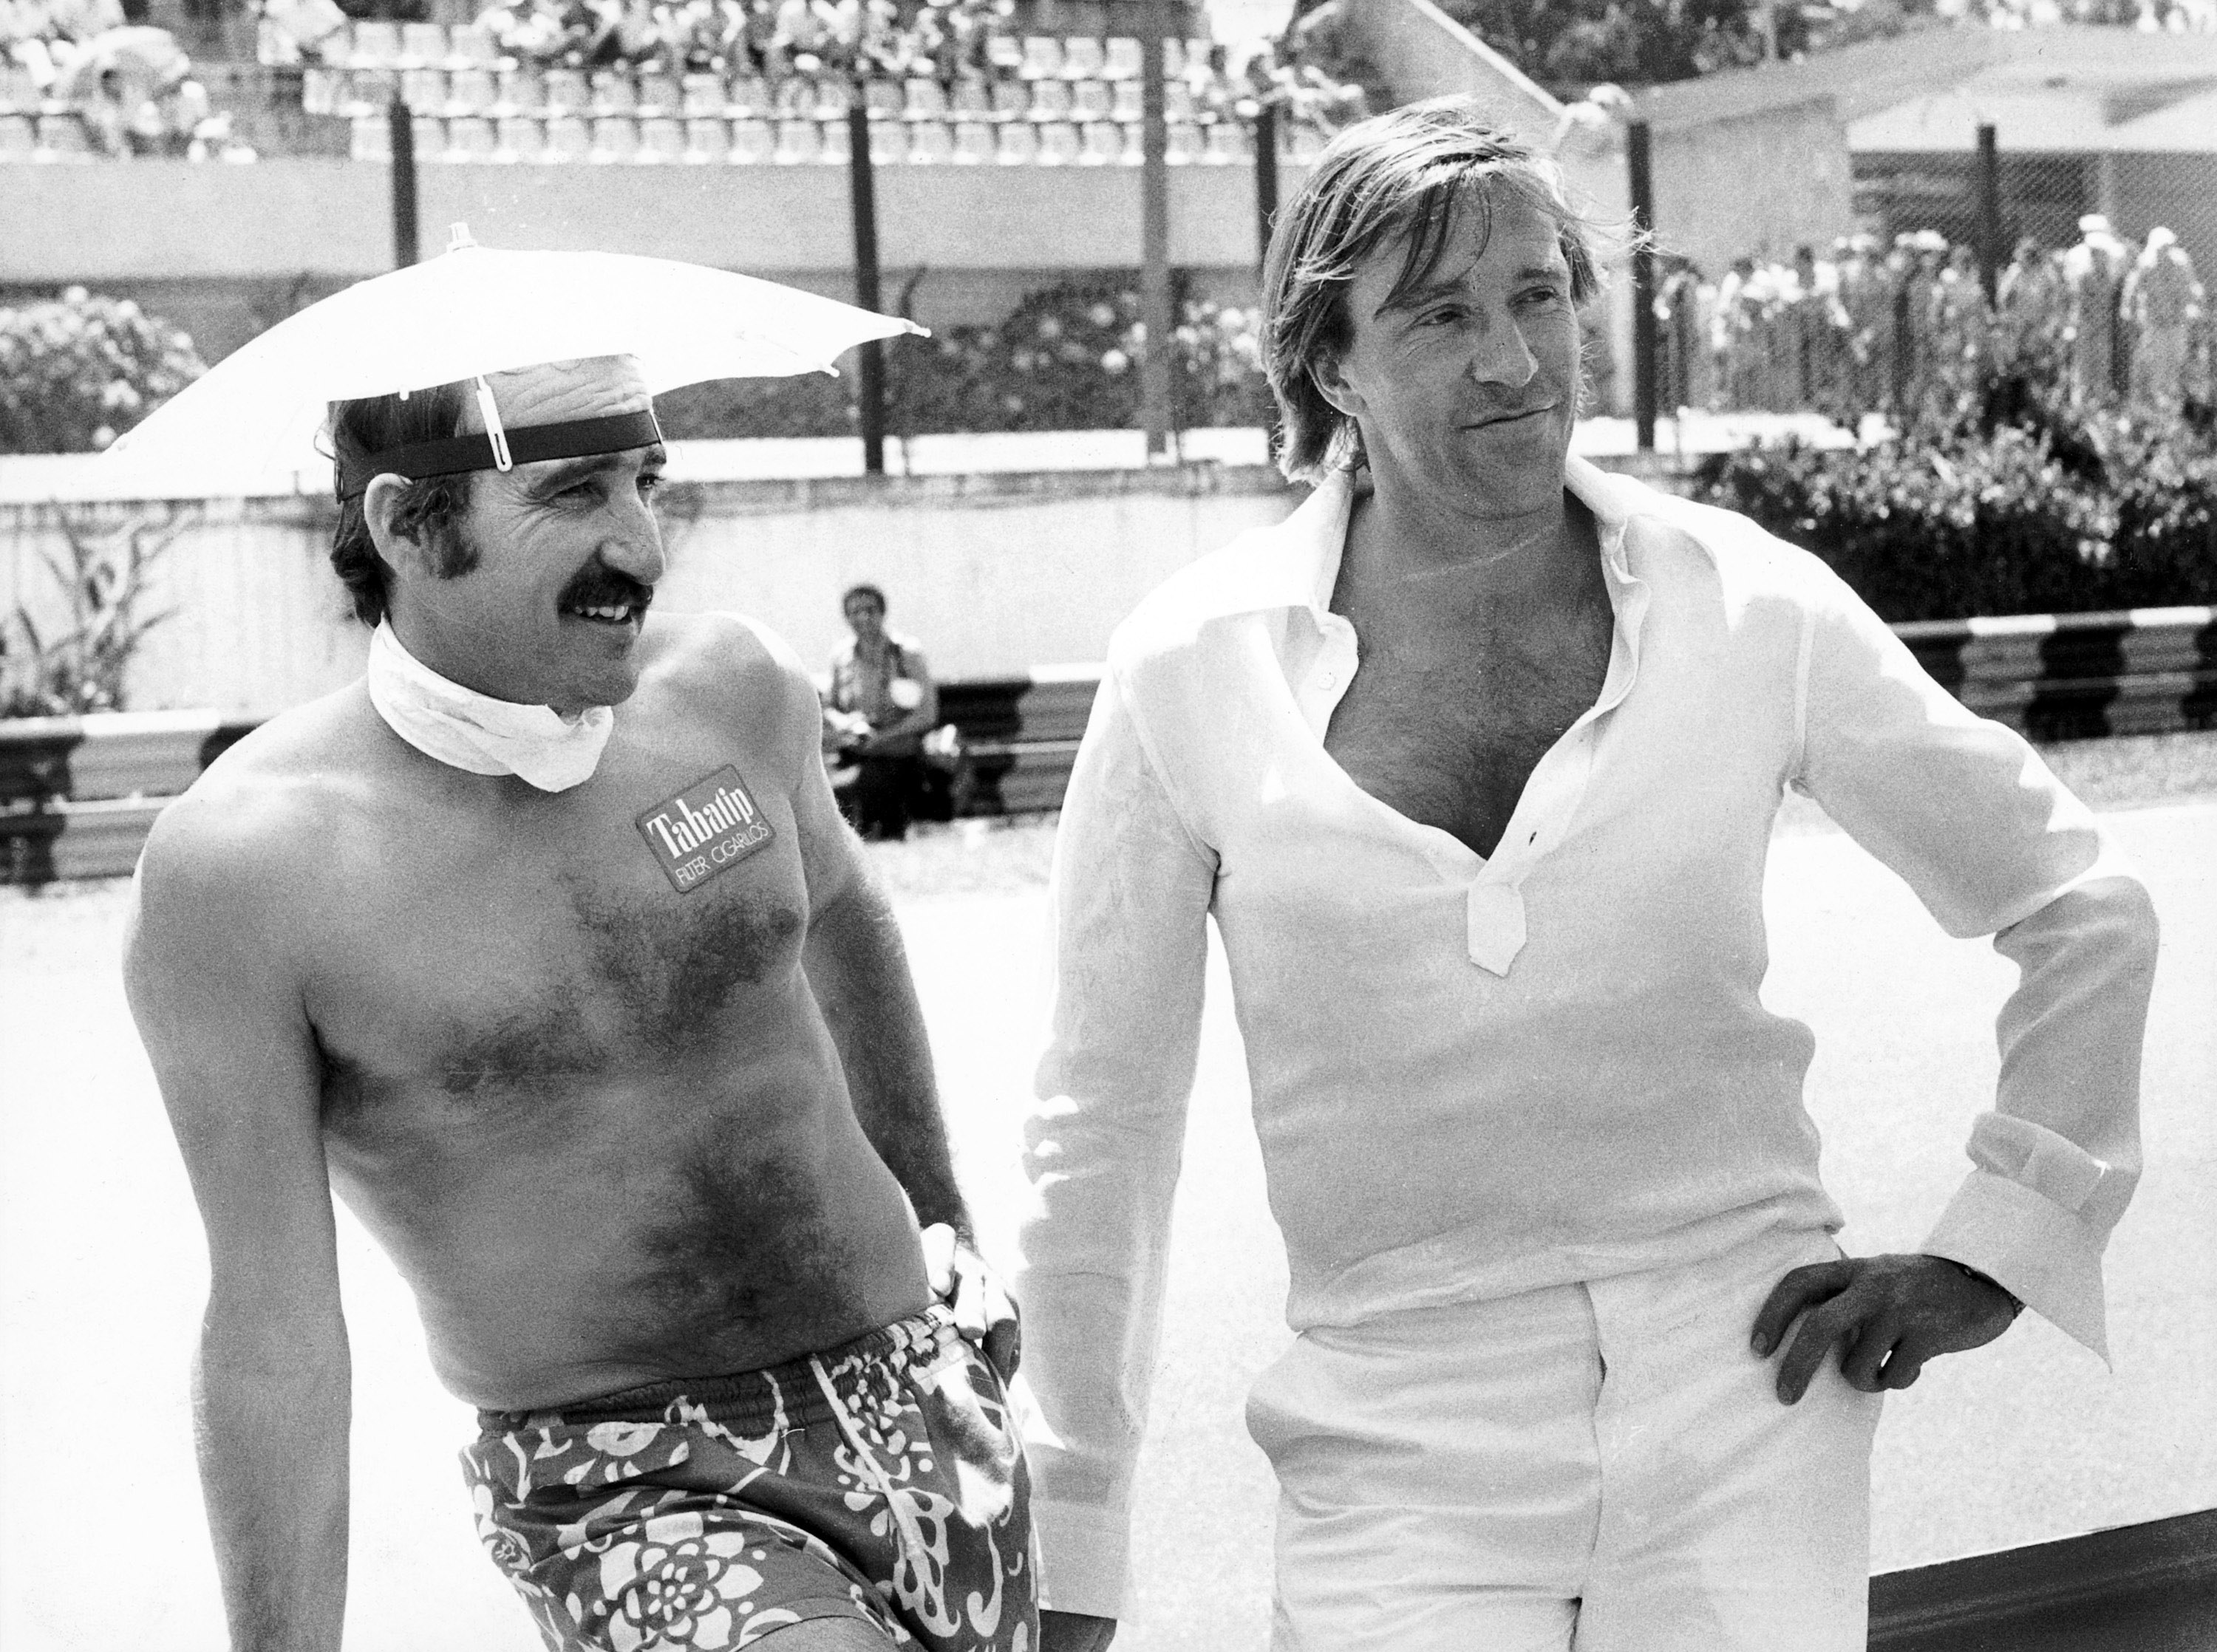 Clay Regazzoni and German football player Günter Netzer, Argentinian Grand Prix, 1978 (RDB)